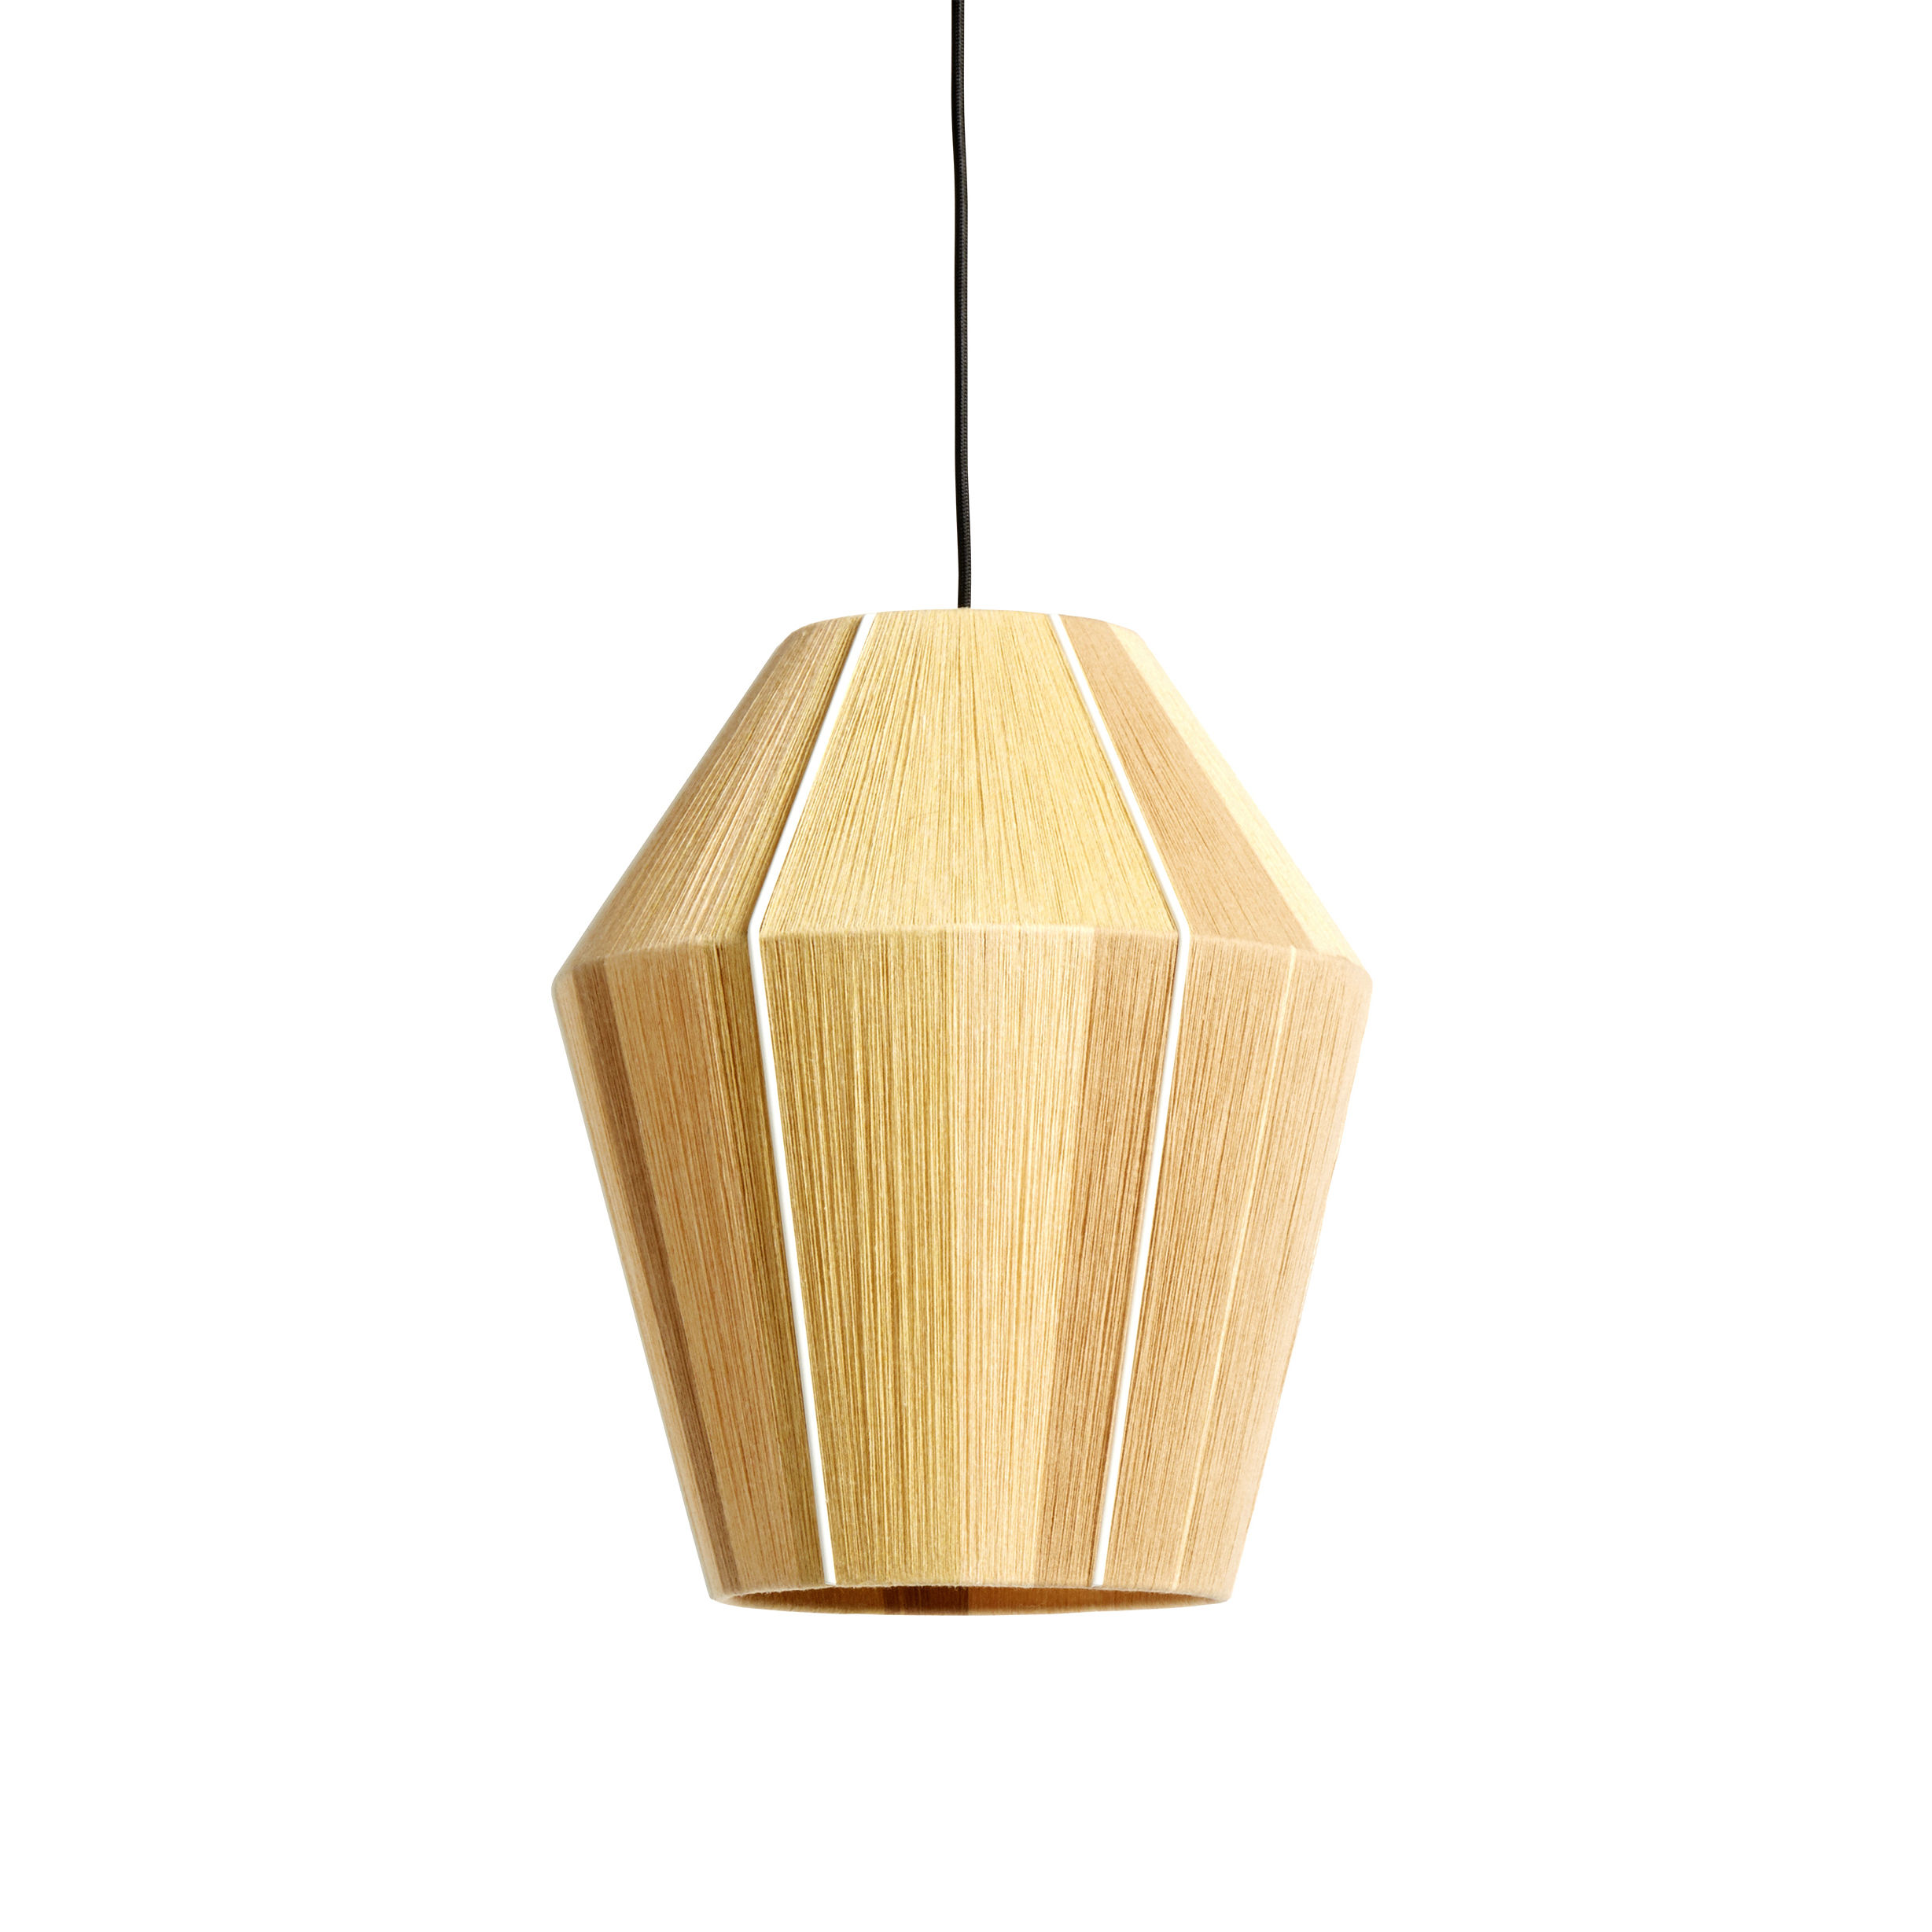 Lighting - Pendant Lighting - Bonbon Small Lampshade - / Ø 32 - Hand-woven wool by Hay - Small / Yellow - Nylon, Steel, Wool